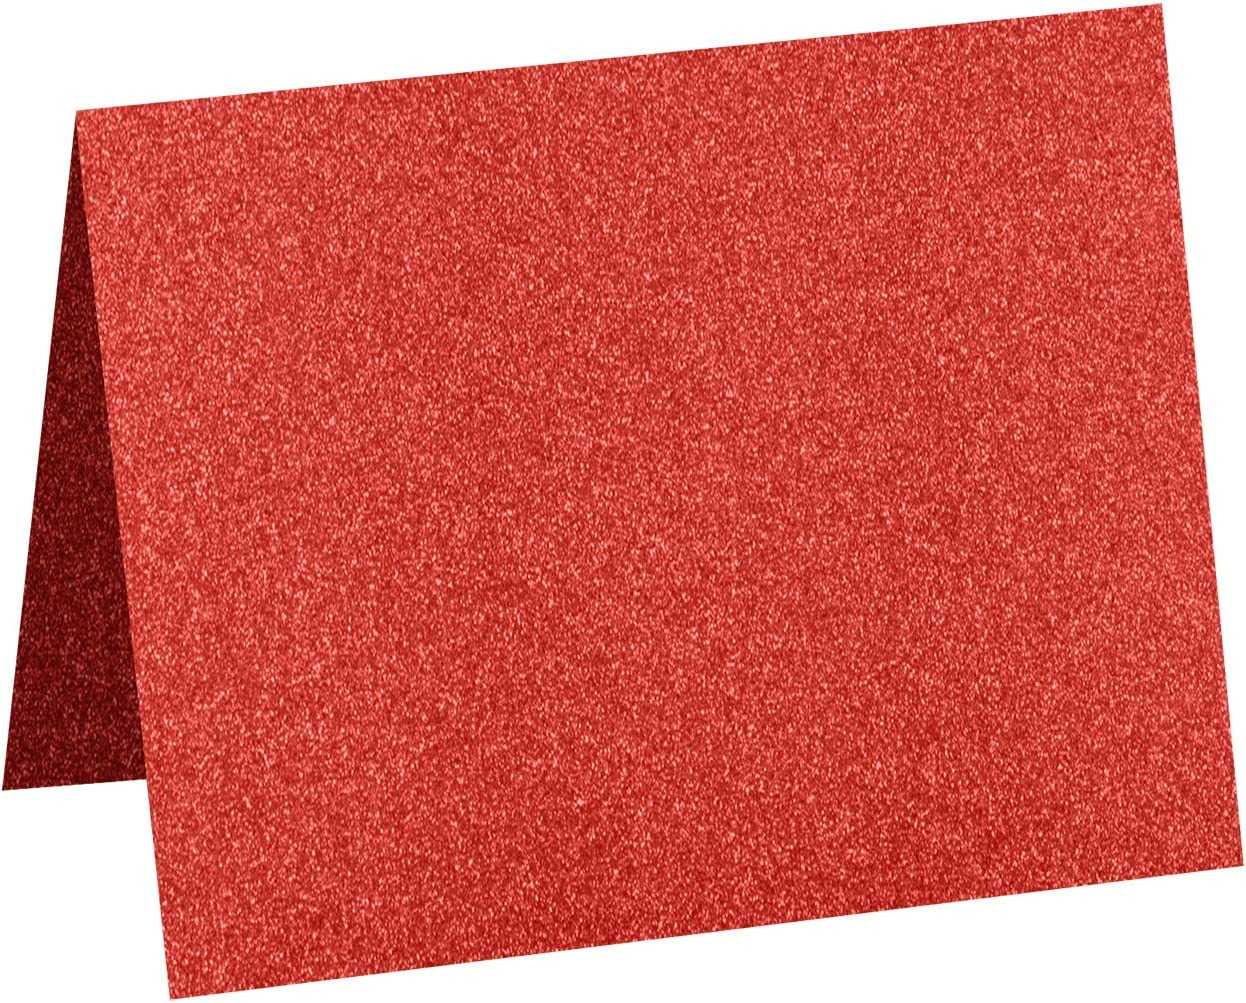 Cards Gold and Office Supplies Scrapbook Rose Gold Sparkle for Crafts 250 Pack LUXPaper A2 Folded Cards in 106lb